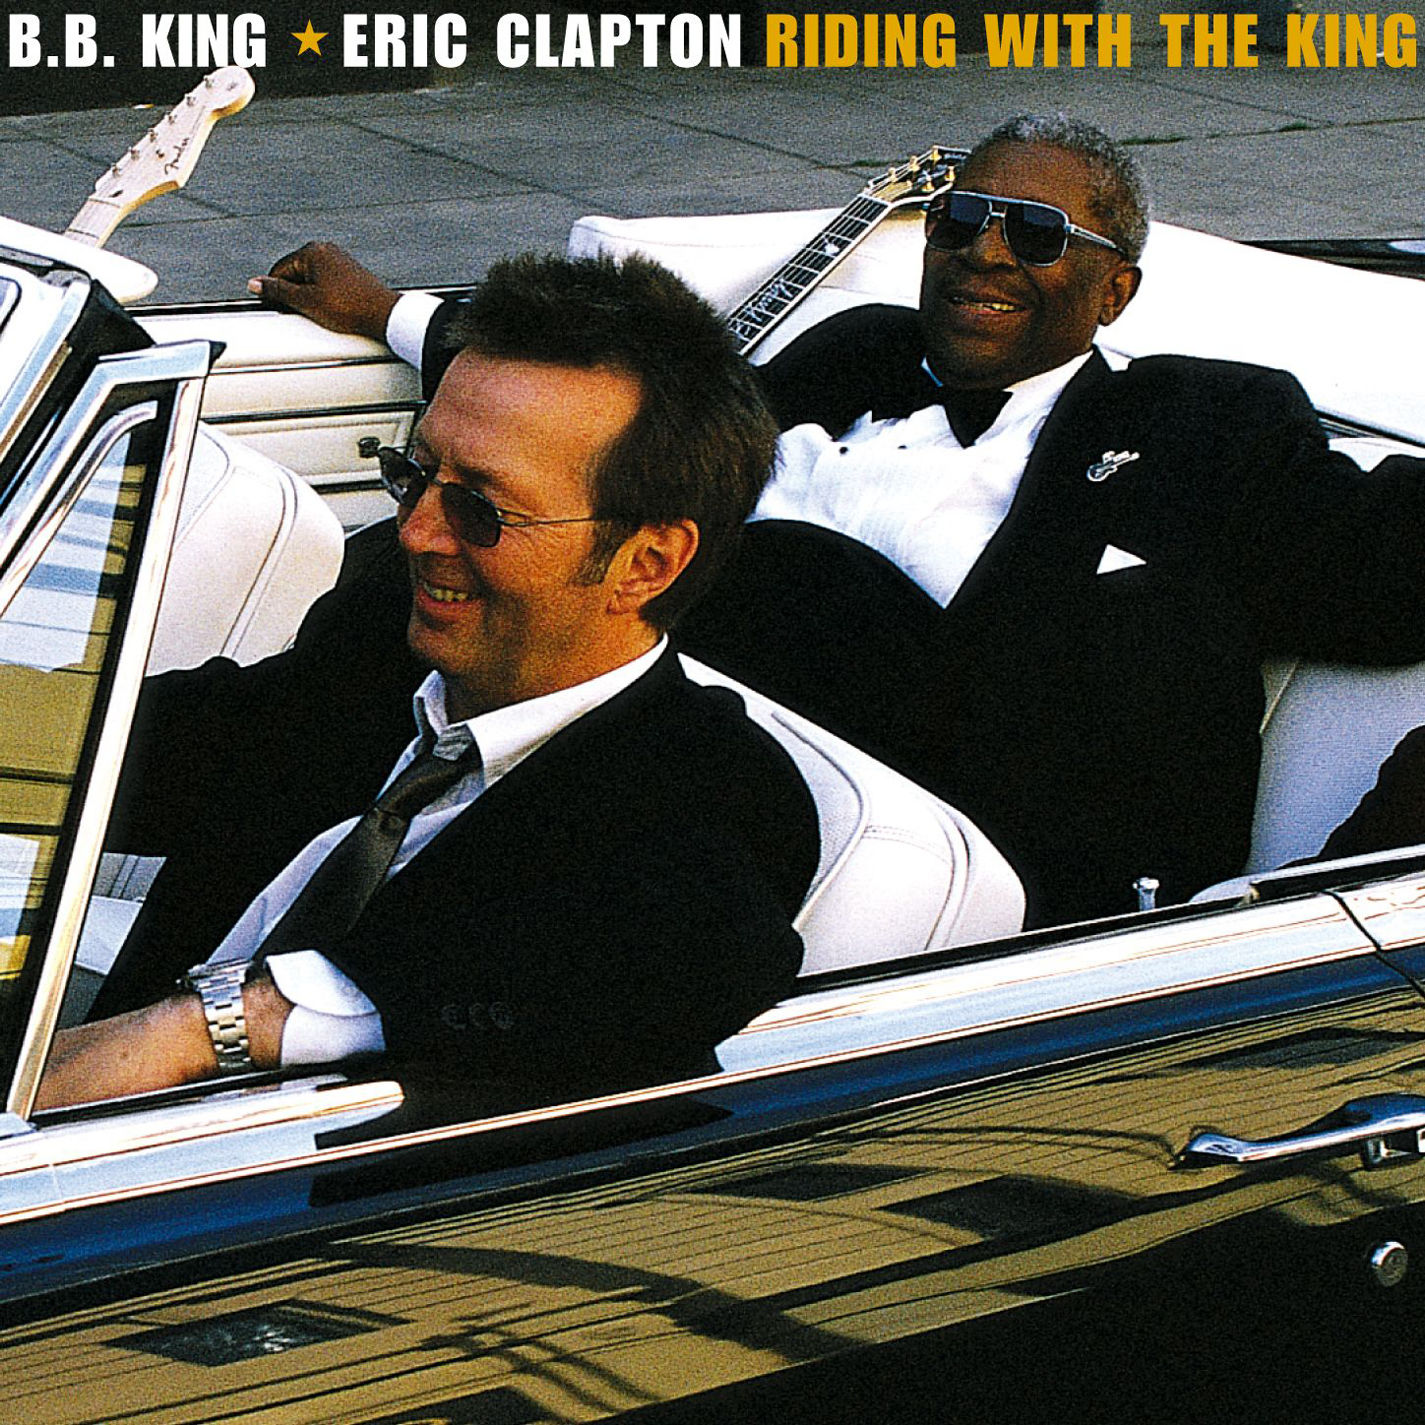 Stiahni si Hudba B.B. King a Eric Clapton  Riding With... [24-bit,96kHz FLAC]